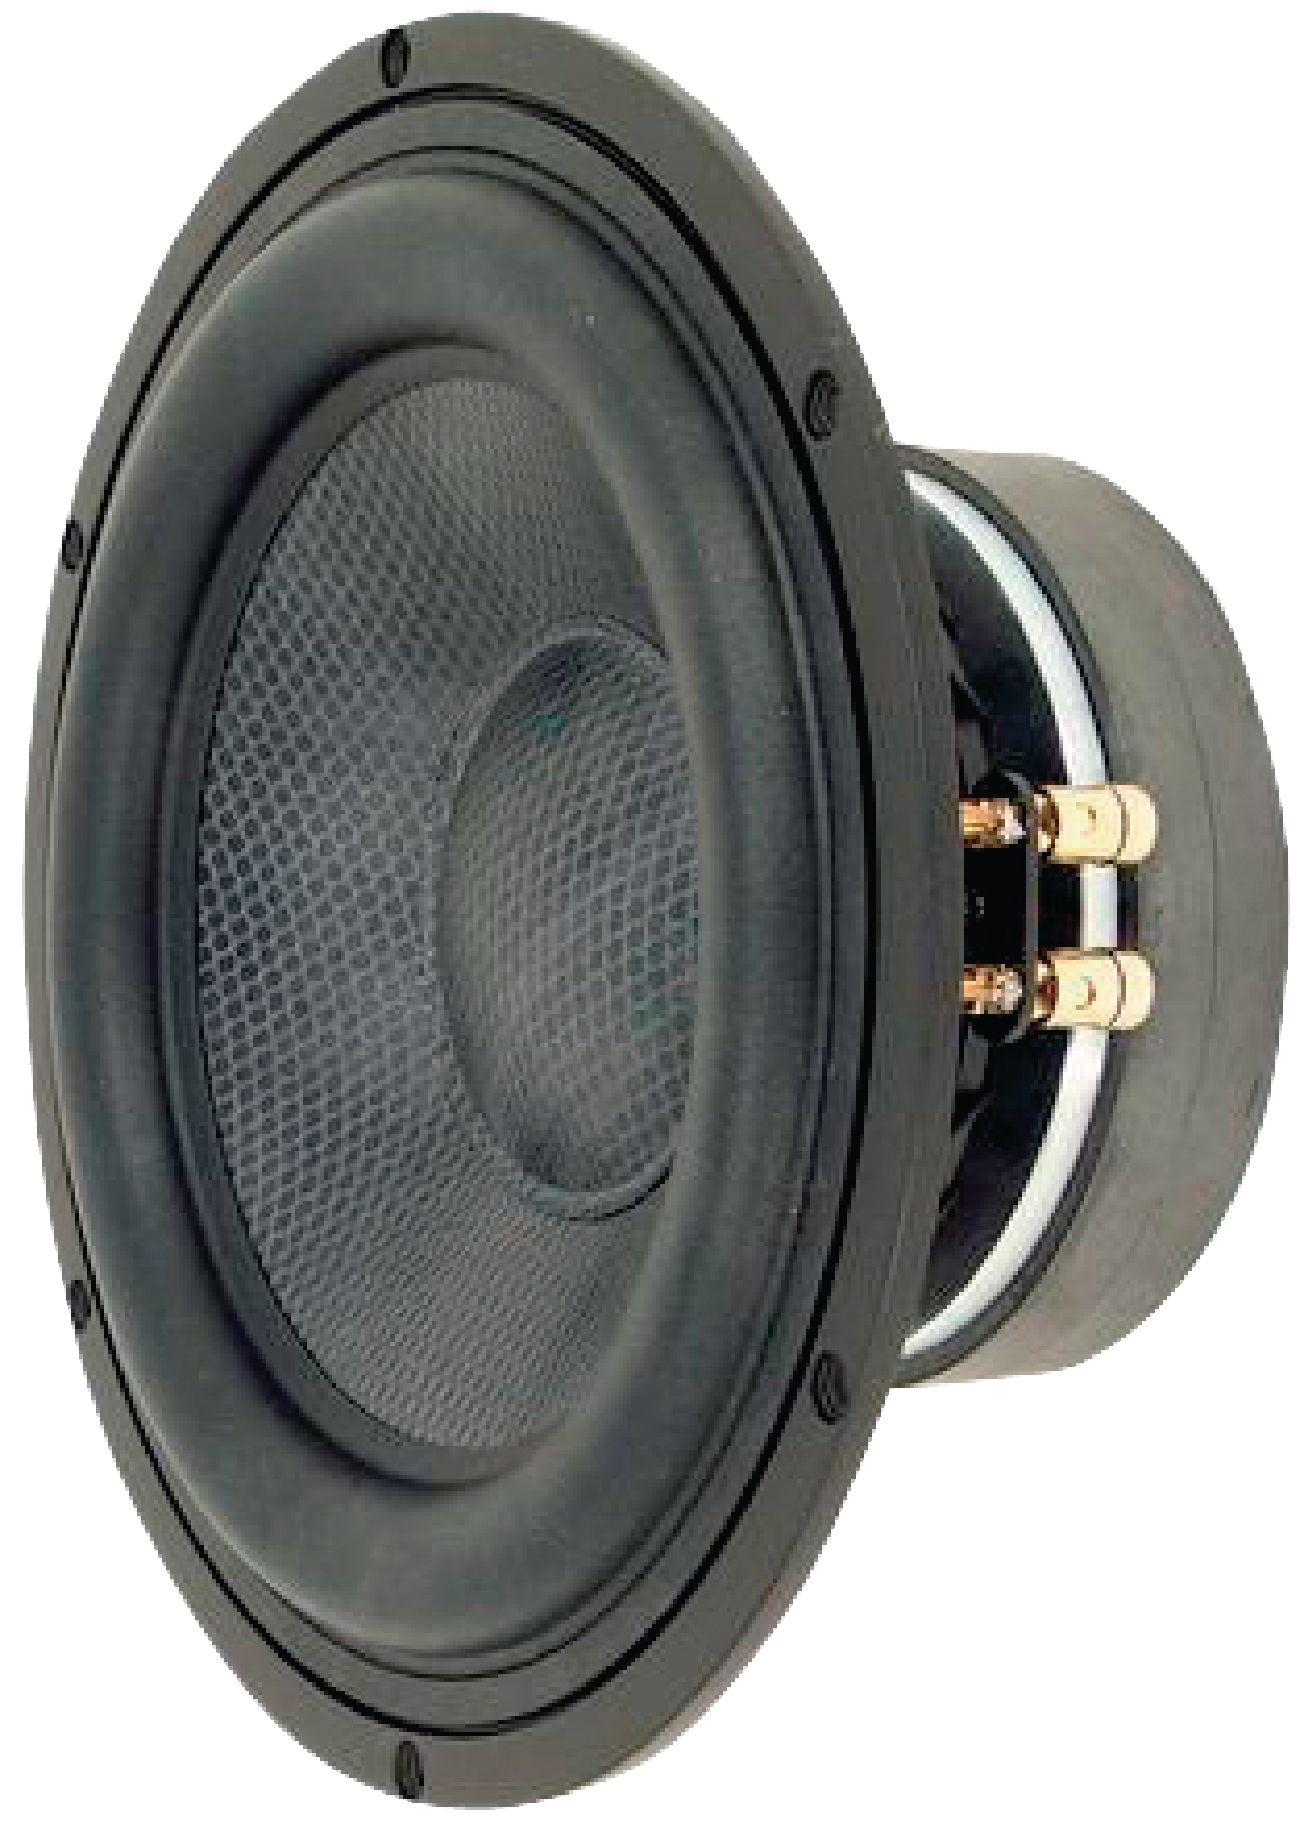 Vs Tiw250xs Visaton Woofer 25 Cm 10 8 Ohm Electronic